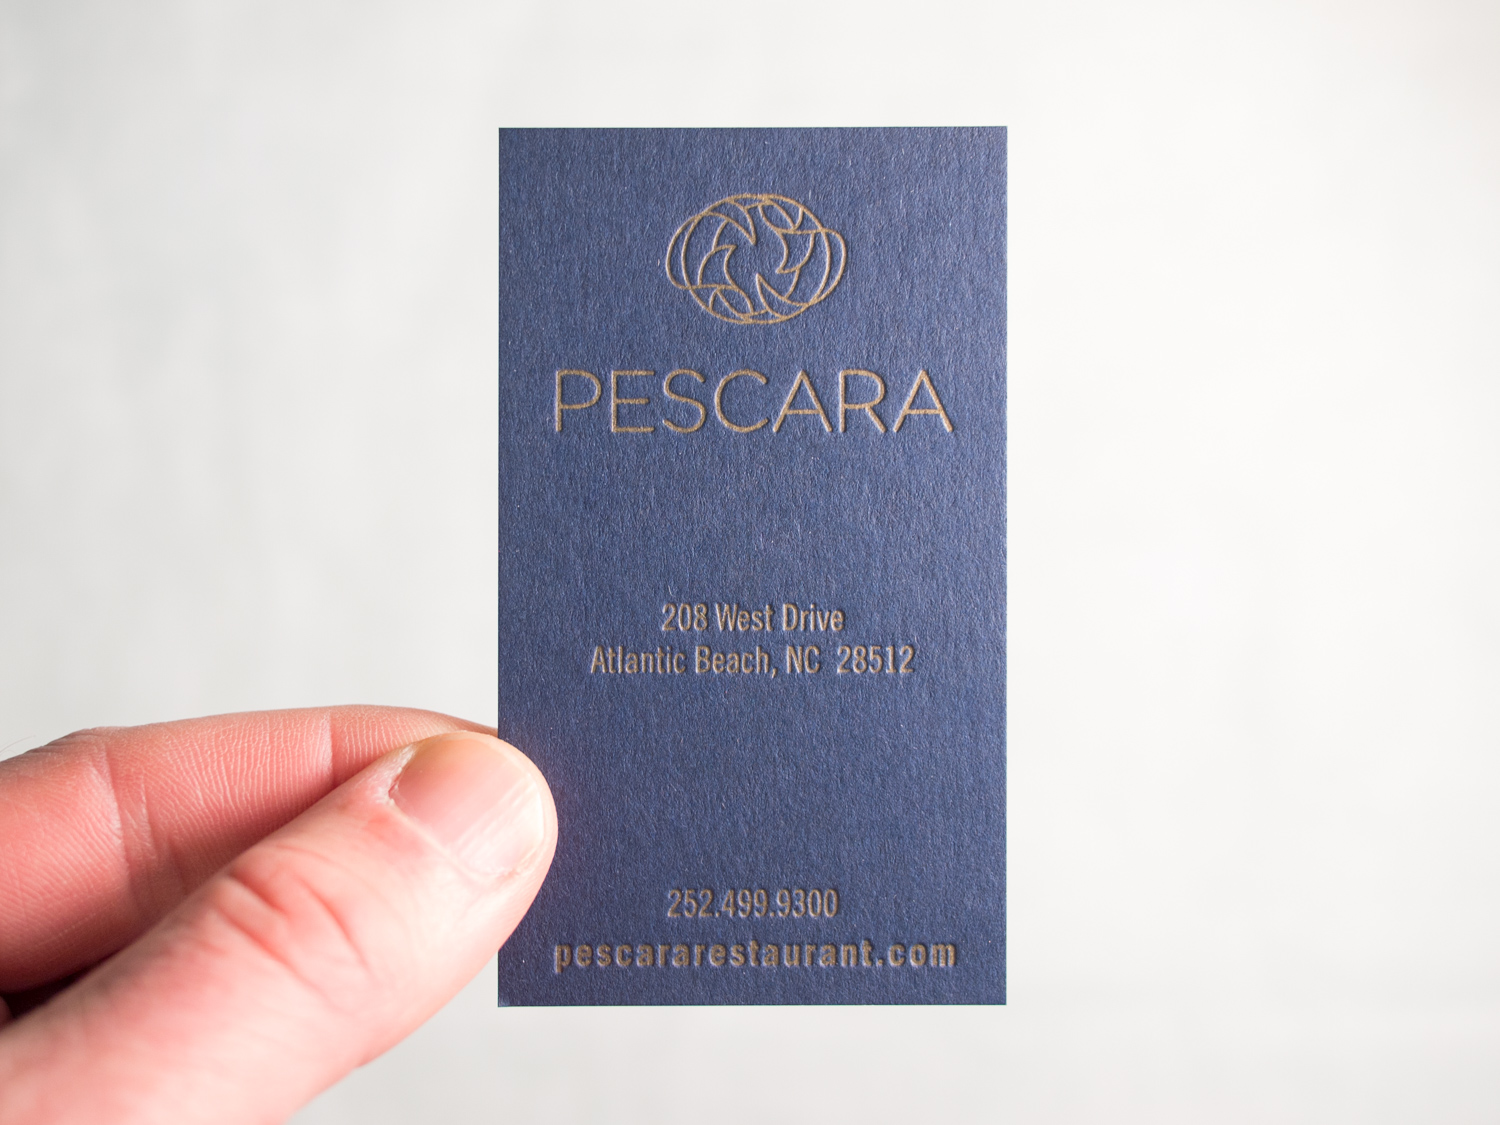 Gold & Navy Business Cards for Pescara — the Parklife Blog